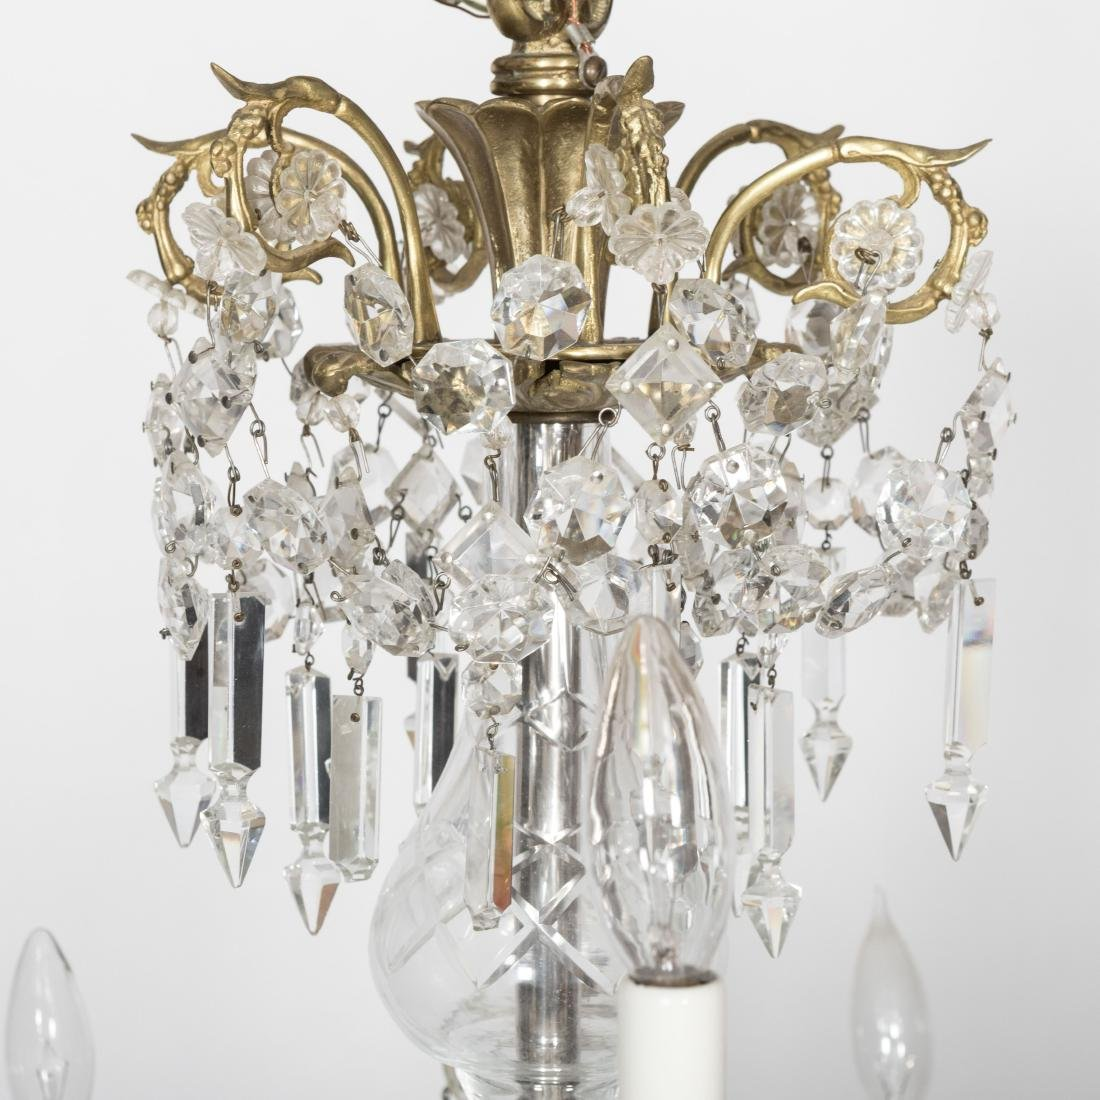 Twelve Arm French Style Chandelier - 4